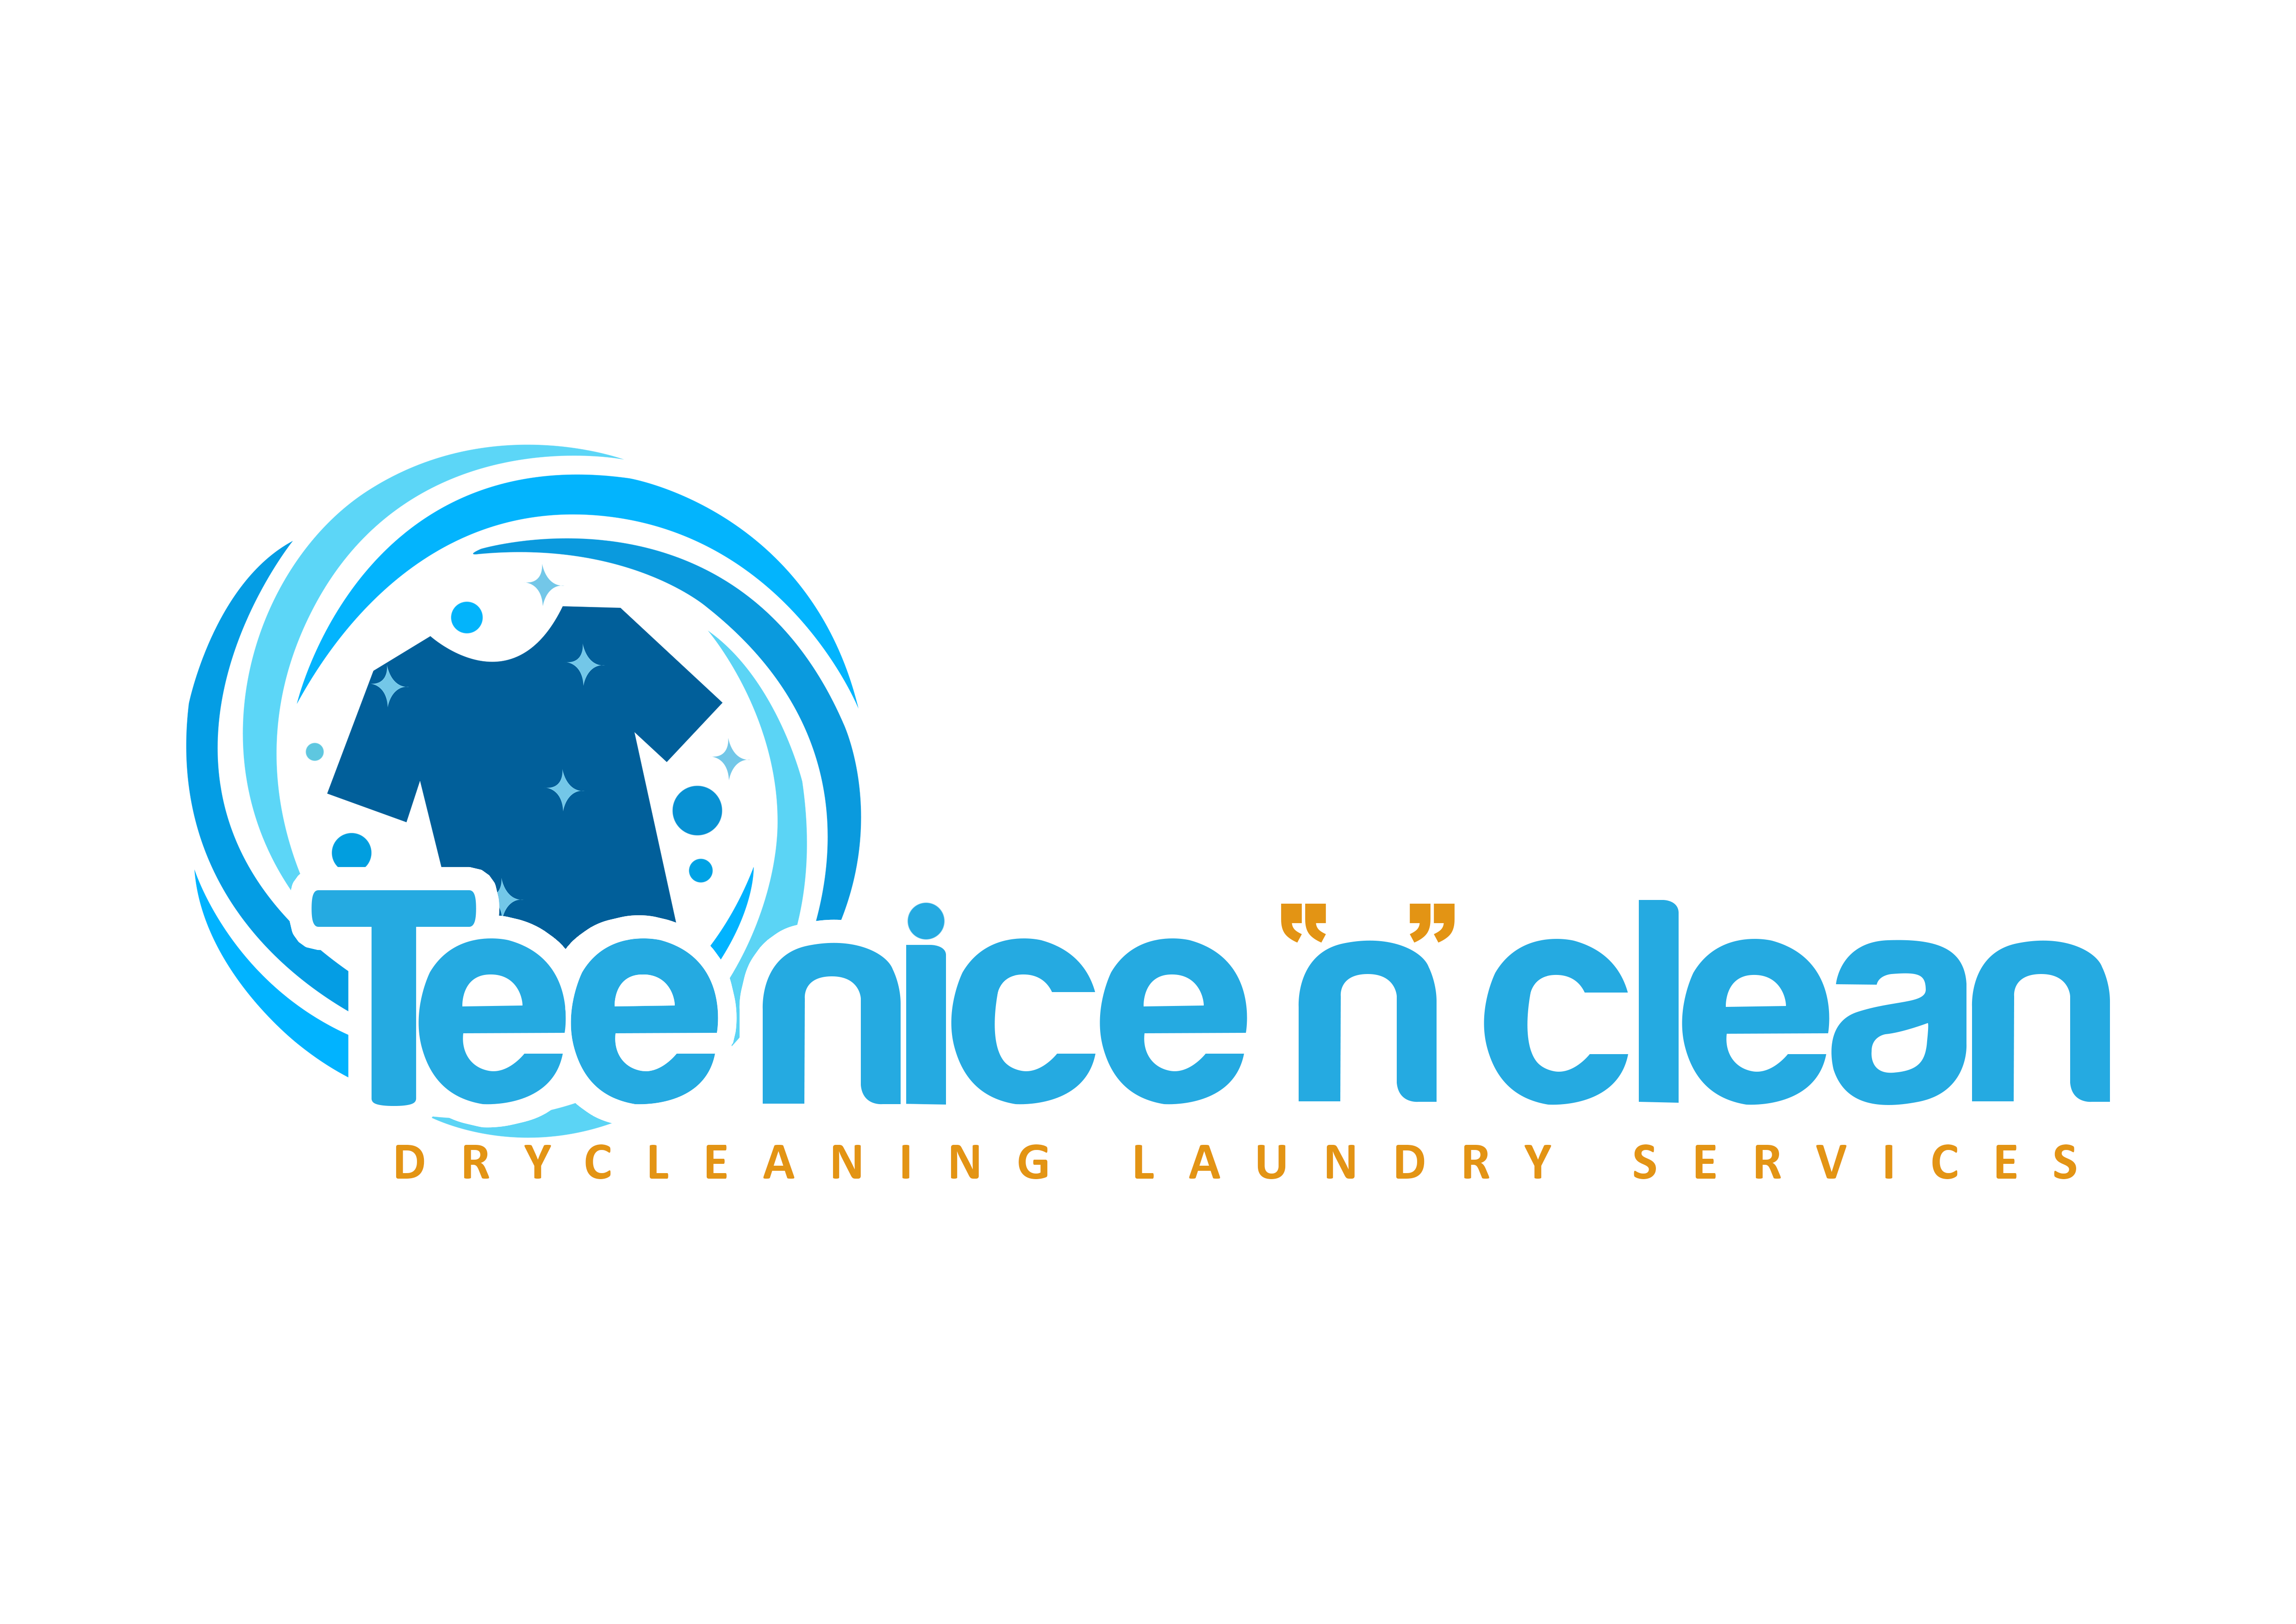 tee nice n clean laundry services logo design logo design collection branding design logo laundry design pinterest